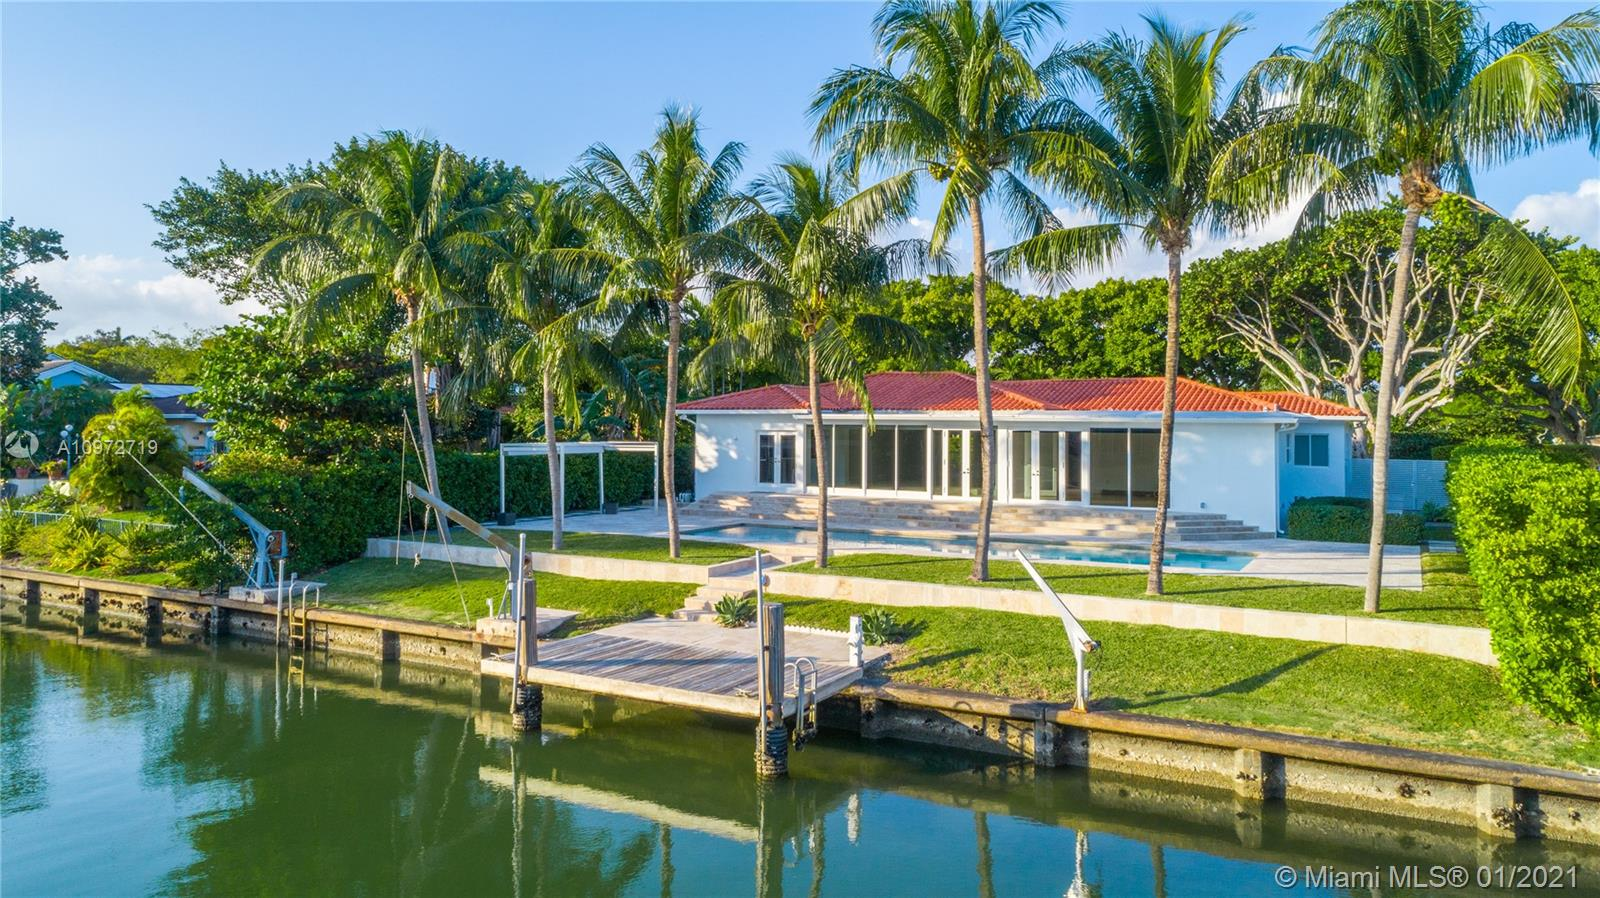 Stunning 3-bed/3-bath home available in Bay Point, an exclusive, gated community in the heart of Miami. Enjoy breathtaking water views in your saltwater pool from a backyard equipped perfectly for entertaining and enjoying the South Florida weather. Sparing no detail, this one-of-a-kind home comes with recent upgrades such as a brand new A/C and pool heater. With private roads patrolled 24/7 by security, Bay Point guarantees safety like none other. Conveniently located near Miami's best private schools and just a short drive from the airport. 720 Lake Road is also within proximity to Downtown, South Beach, and Wynwood Design District where you can easily enjoy the Miami lifestyle and all of its world-class entertainment, dining, and cultural destinations.